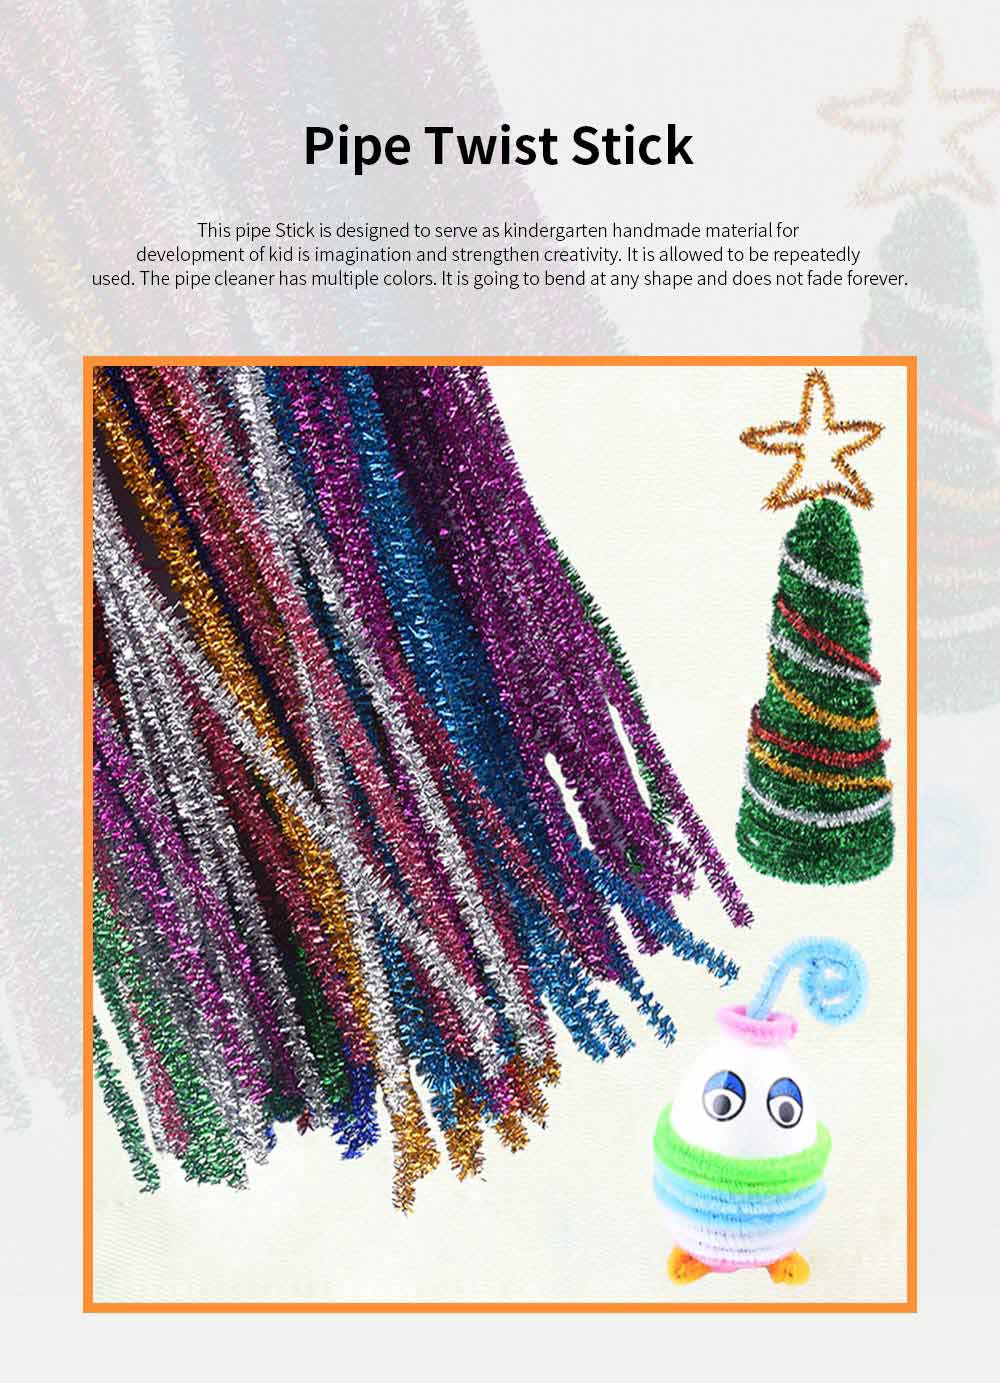 100PCS Colorful Pipe Stick for Kindergarten Handmade Material Mixed Colorful Pipe Twist DIY Cyclic Wave Crooked Stick 0